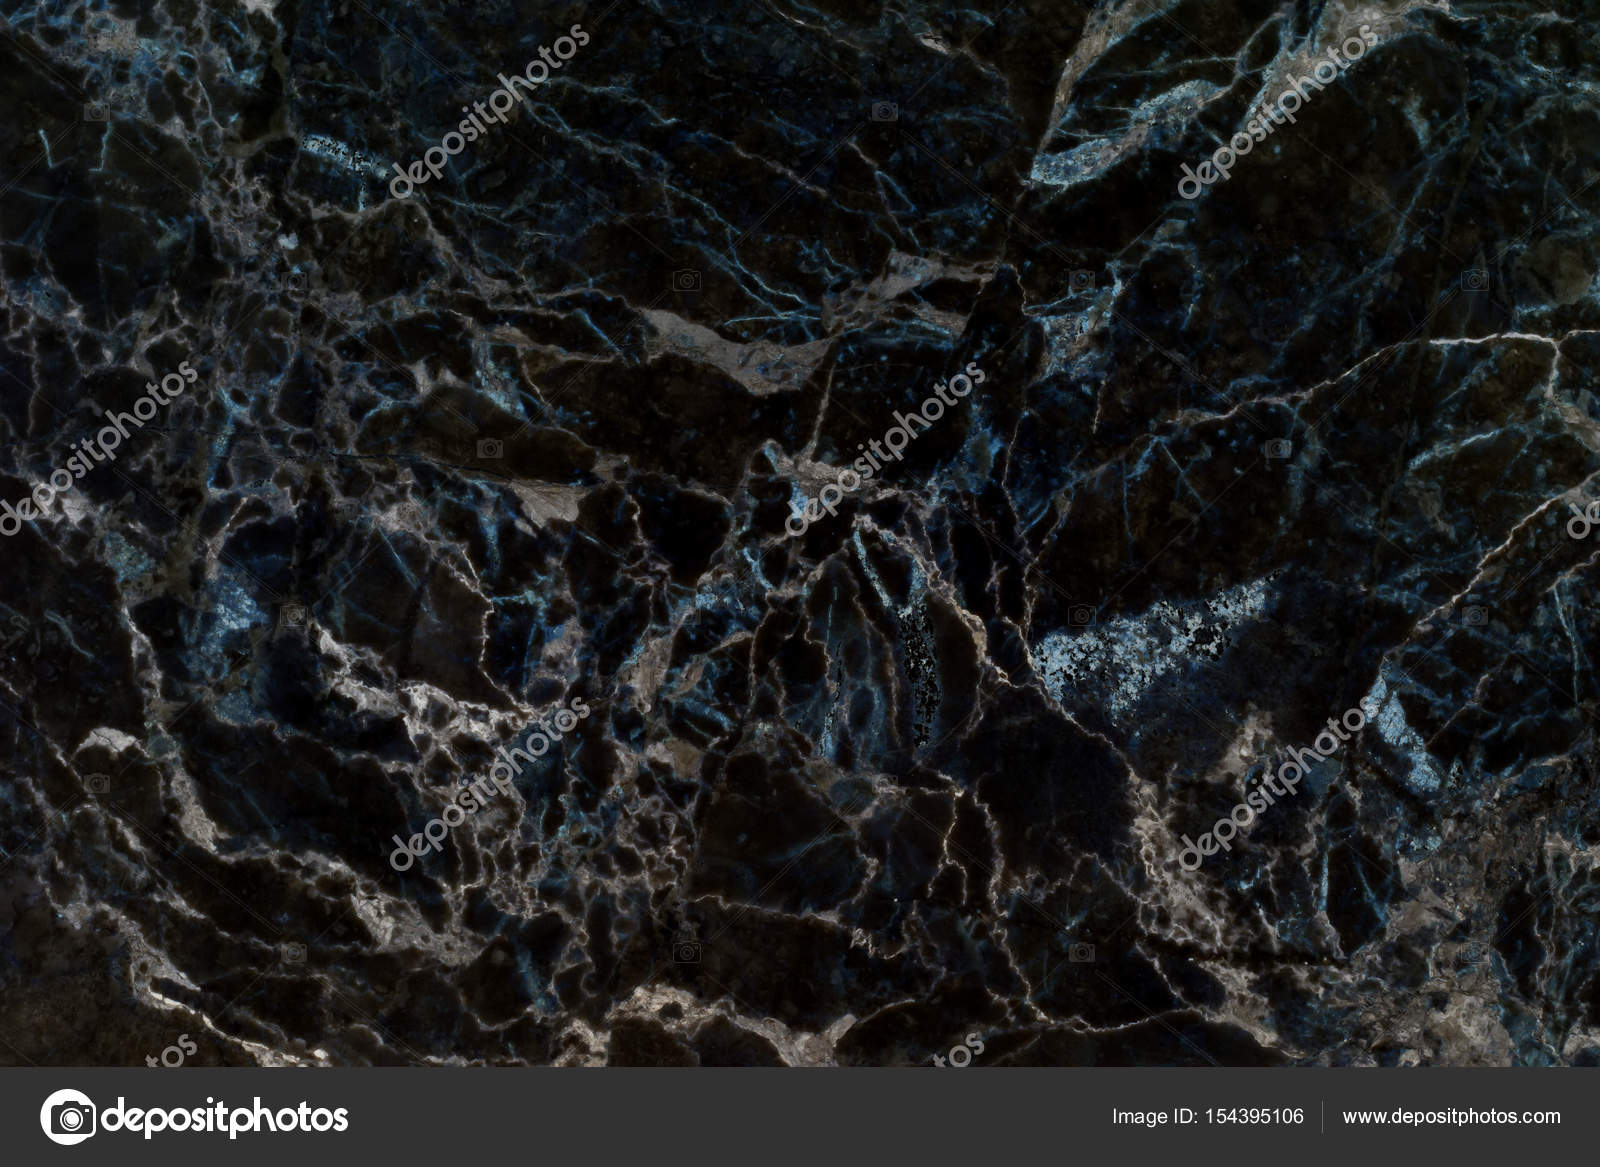 Black Marble Texture Background High Resolution Stock Photo C Scenery1 154395106